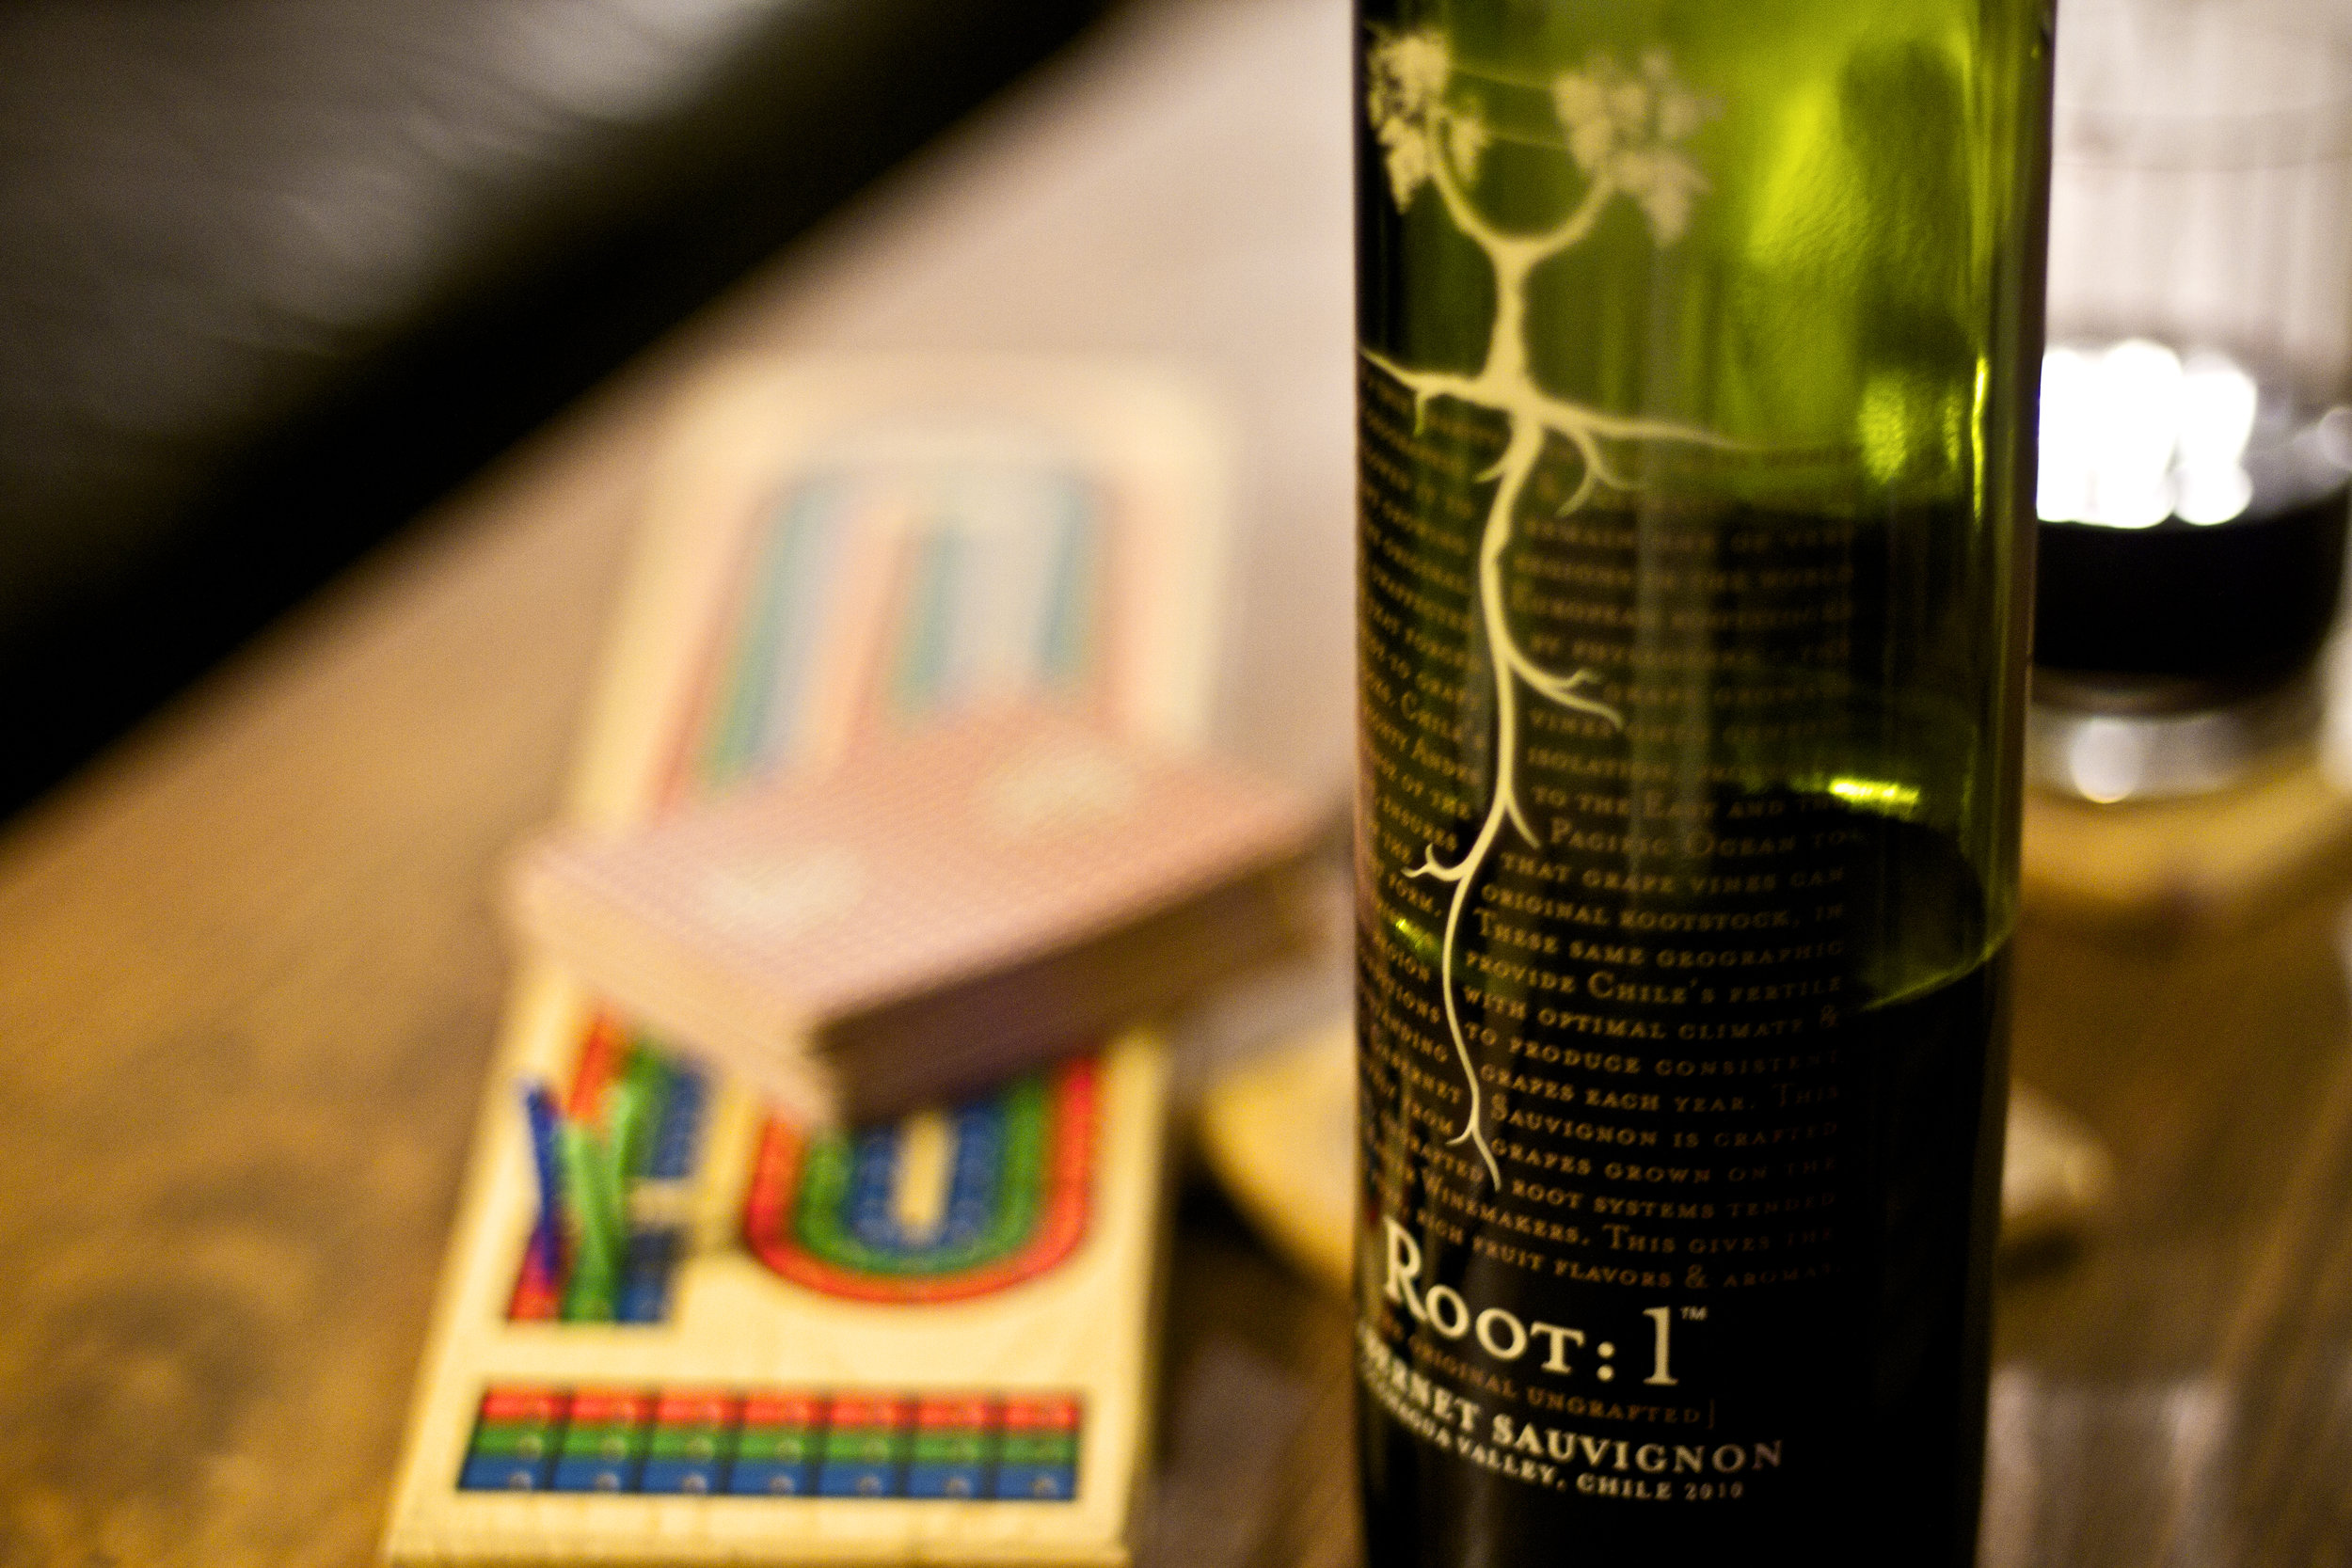 wine-and-cribbage.jpg